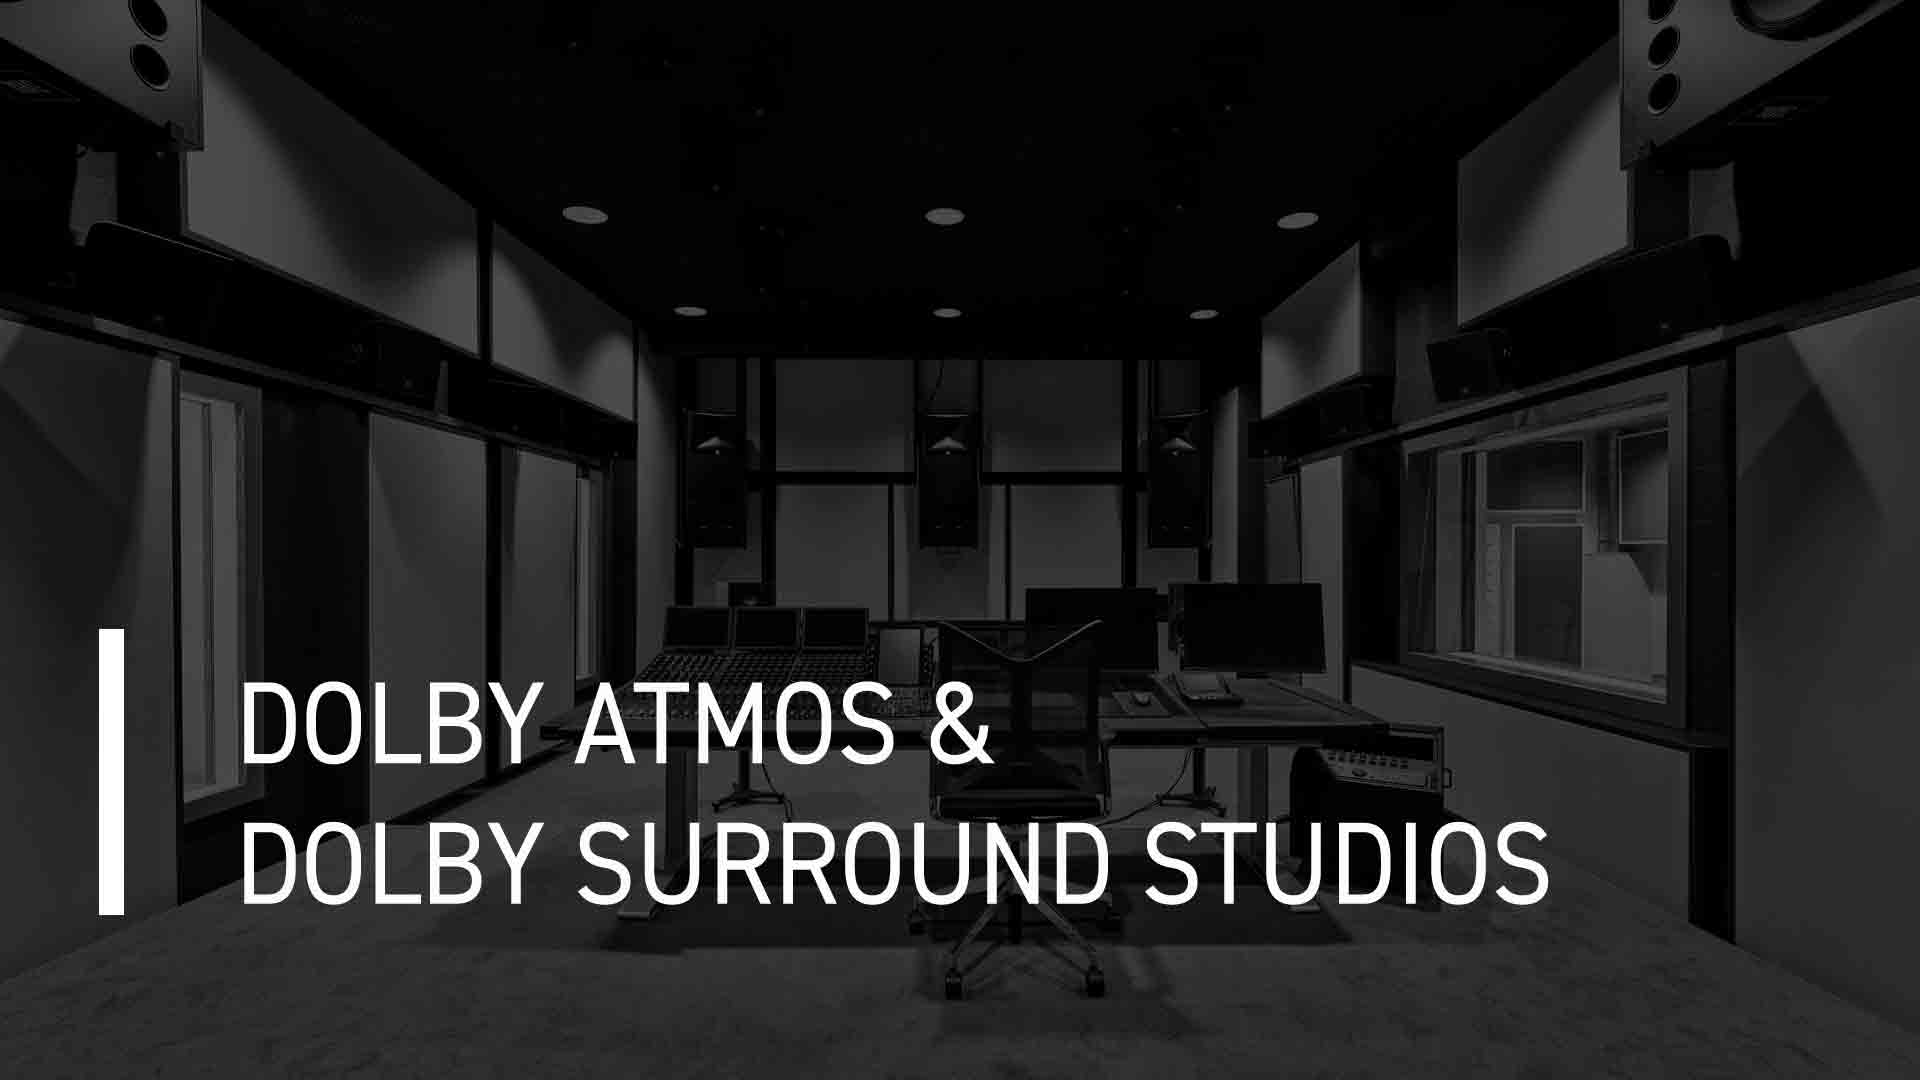 DOLBY ATMOS & DOLBY SURROUND STUDIOS